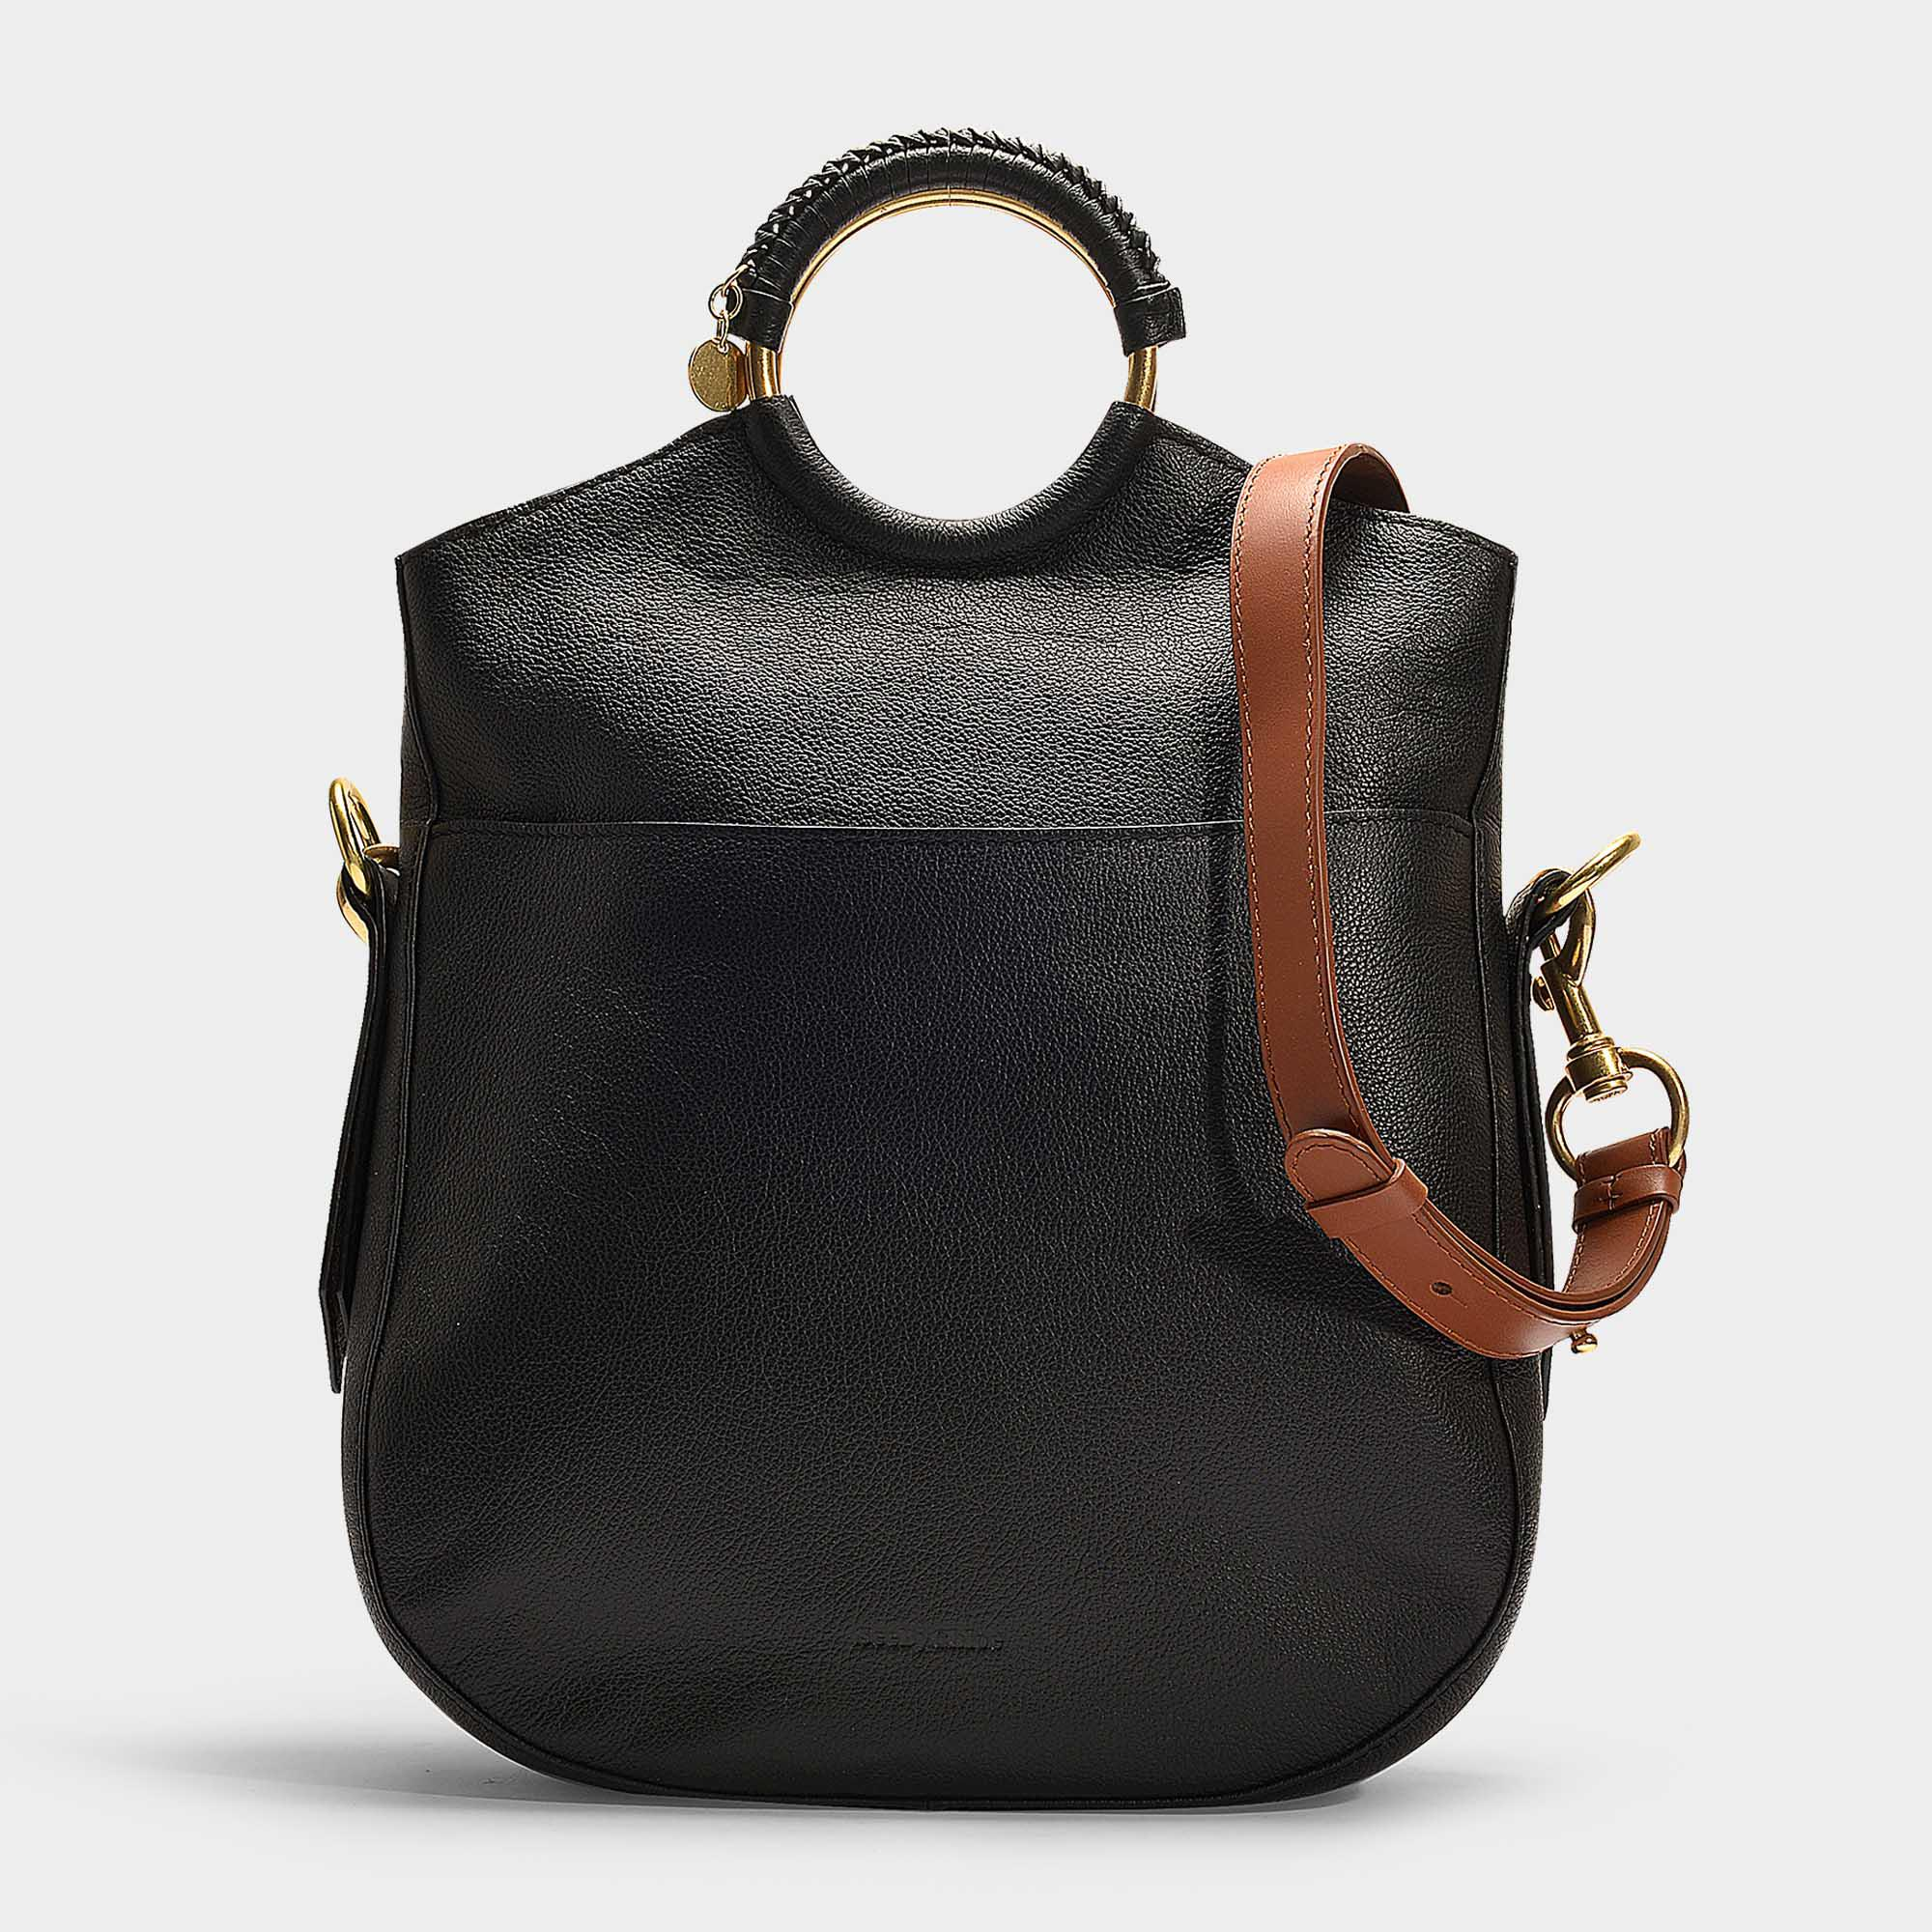 8b1b5a8590 see-by-chloe-Black-Monroe-Bag-In-Black-Small-Grain-On-Cowhide-Leather-Smooth-Cowhide-Leather.jpeg